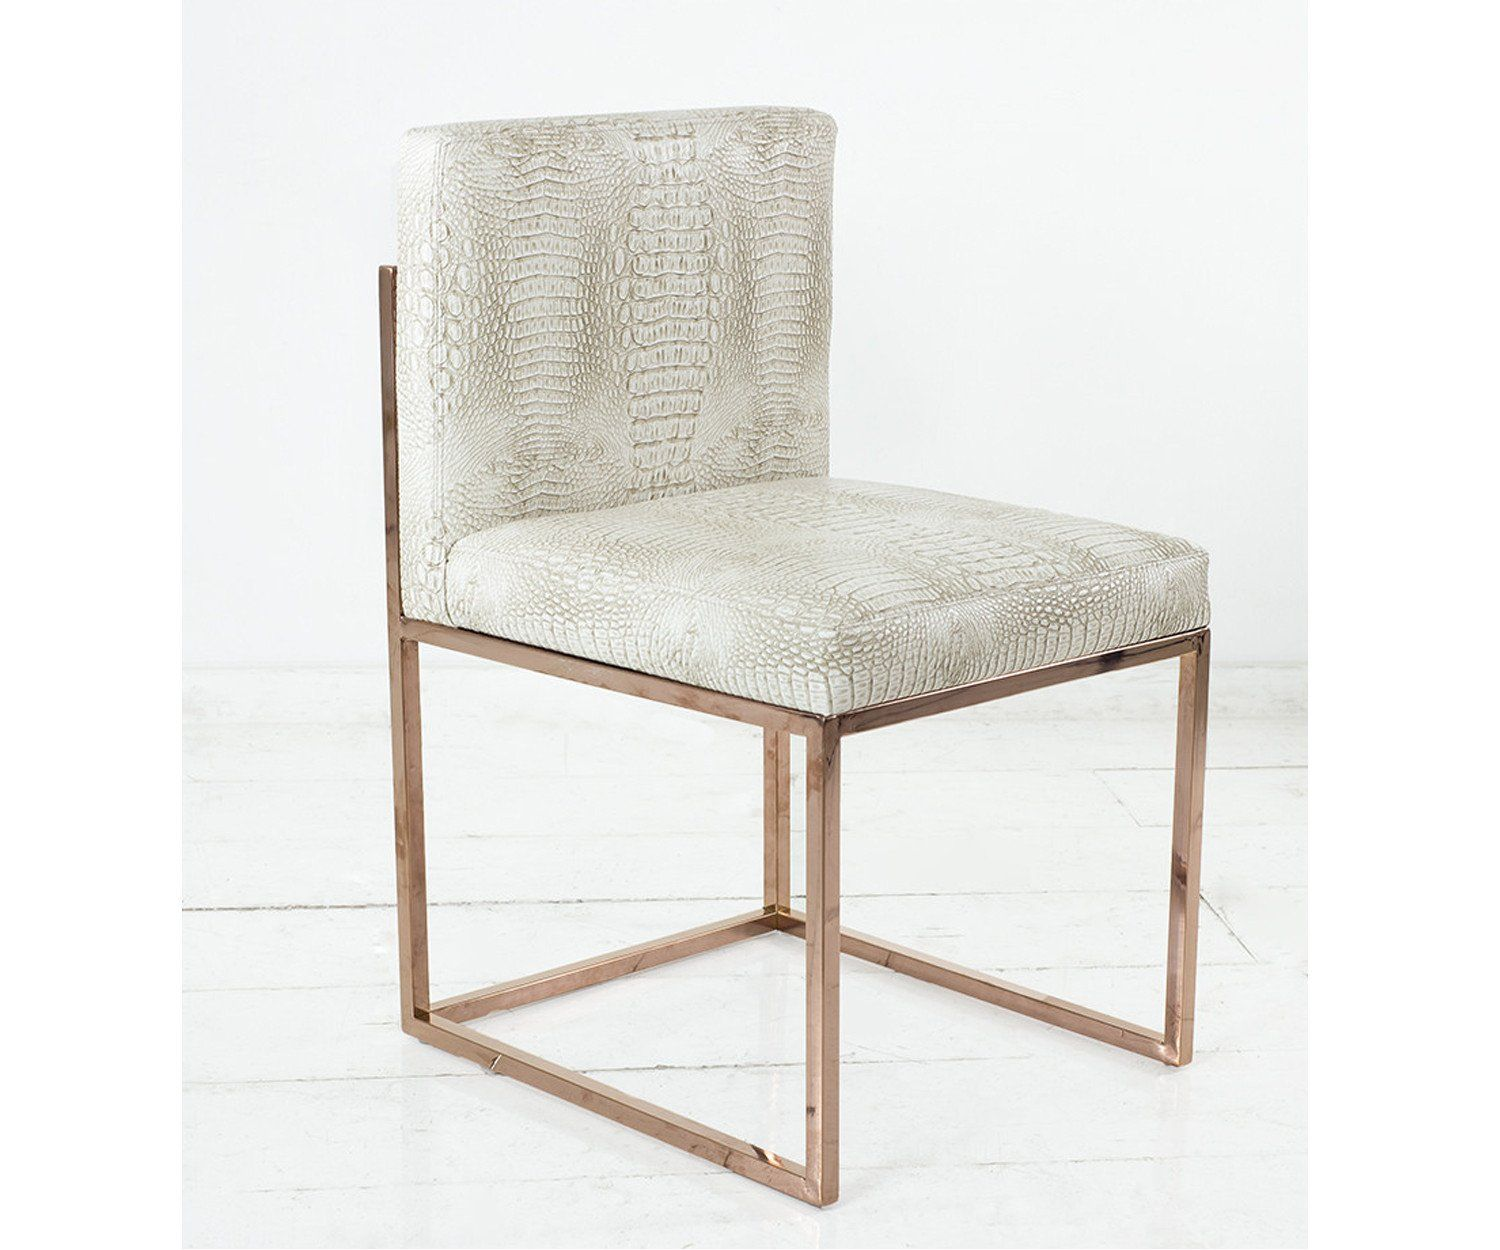 007 Dining Chair With Rose Gold Frame Dining Chairs Upholstered Dining Chairs Luxury Dining Chair